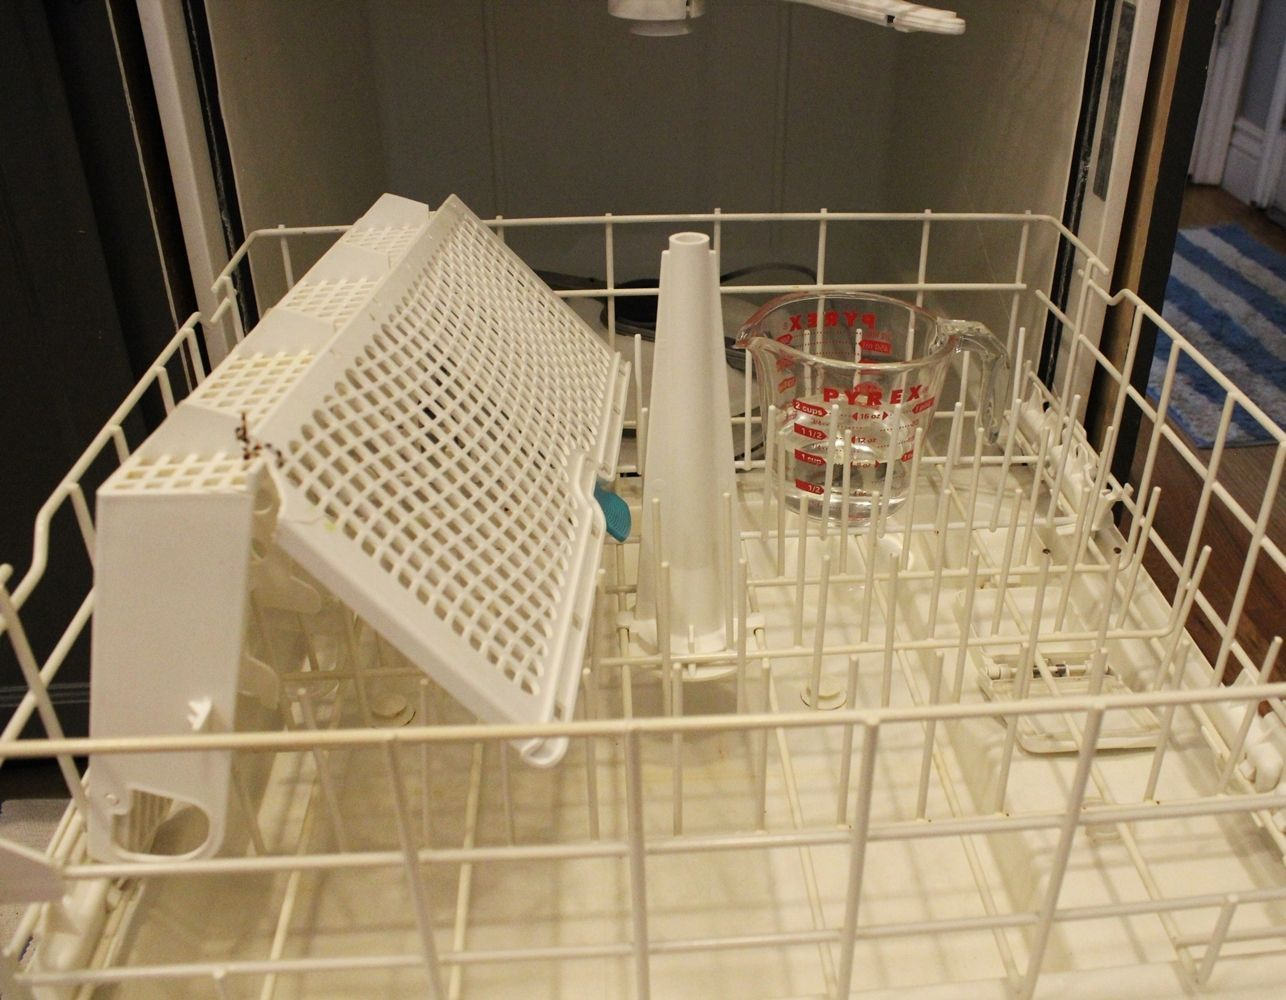 DIY Dishwasher Cleaner - place silverware tray